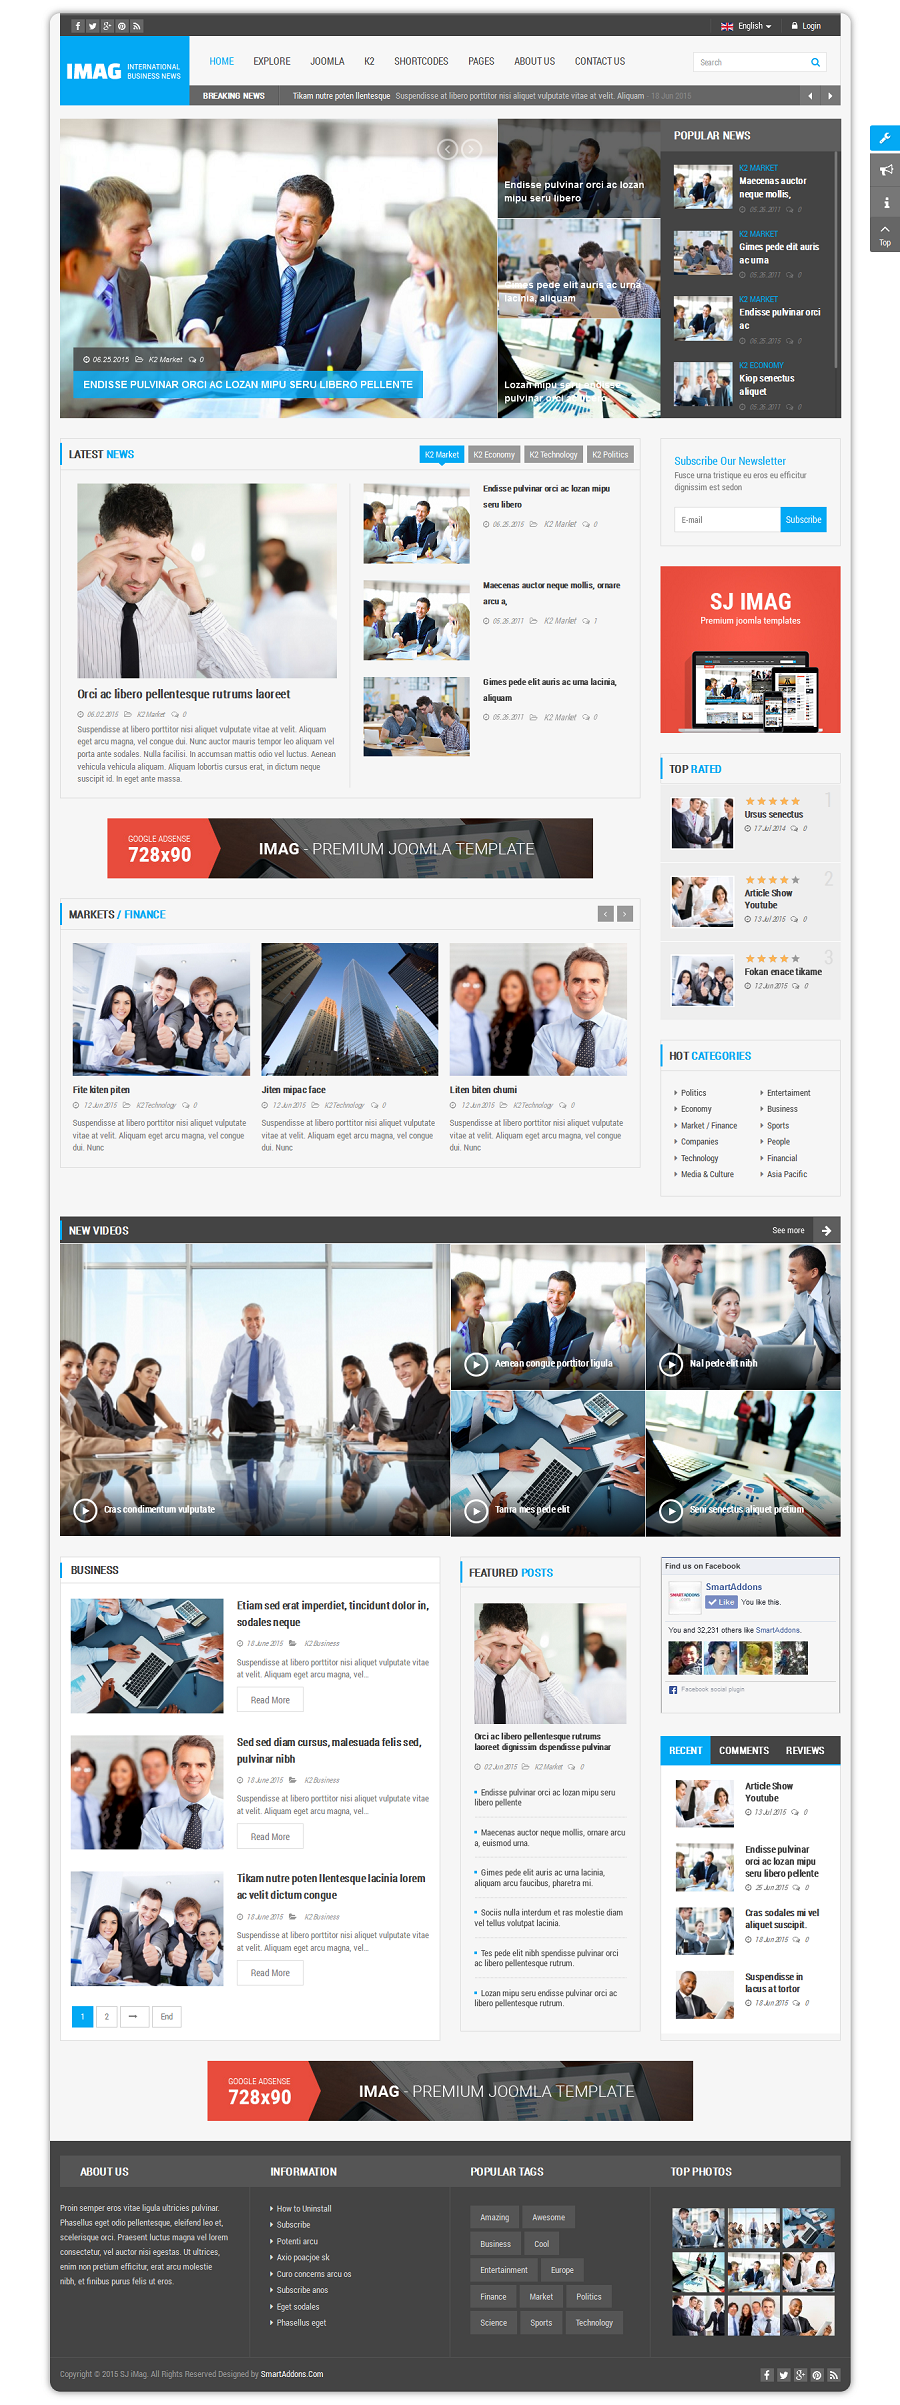 SJ iMag - Responsive Joomla News magazine Template - 10_rounded-layout.png